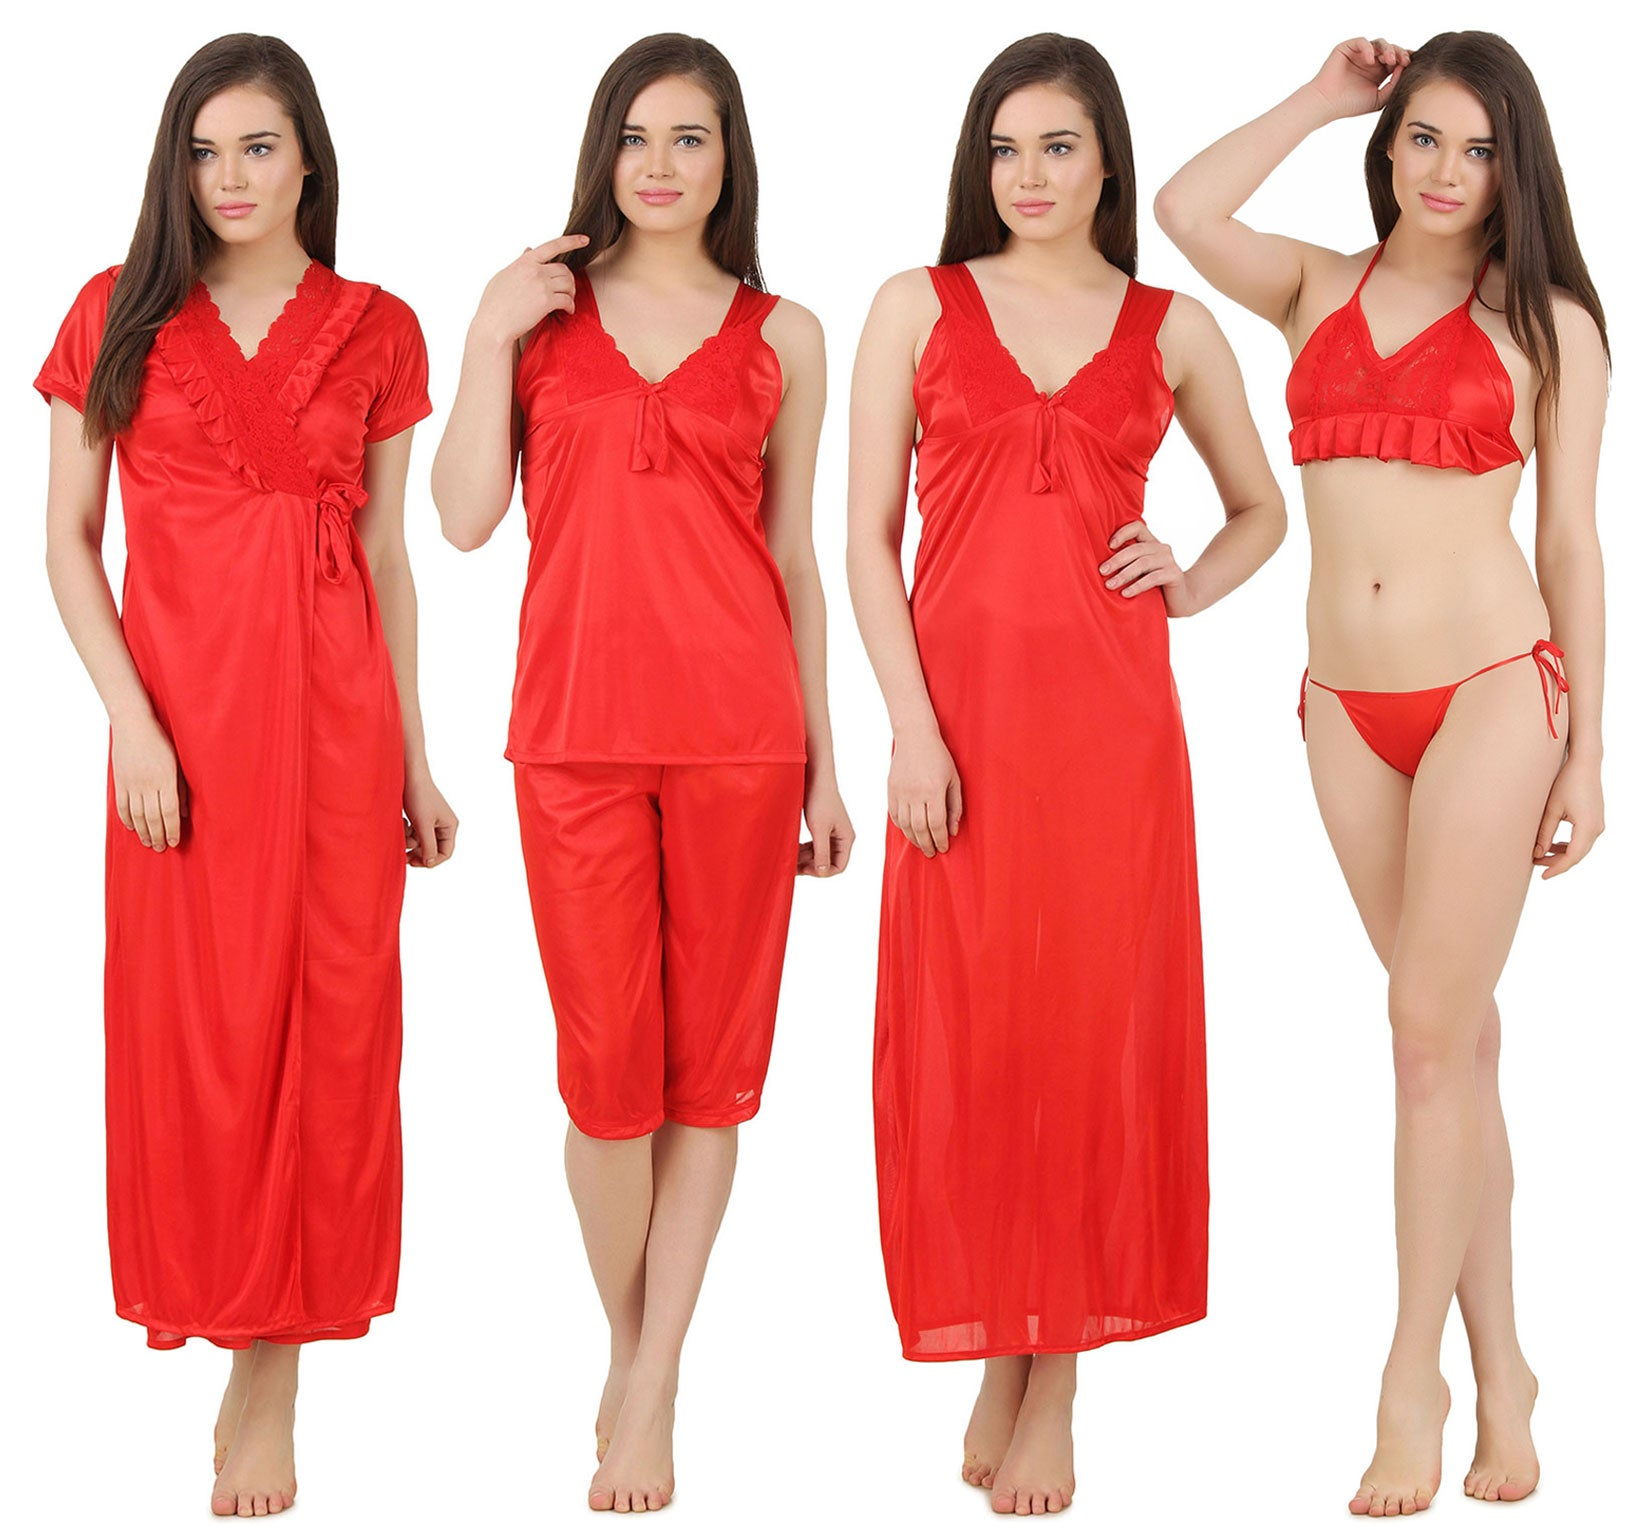 Fasense Satin 6 PCs Set of Long Wrap Gown, Nighty, Top, Capry, Bra & Thong GT002 - fasensestore